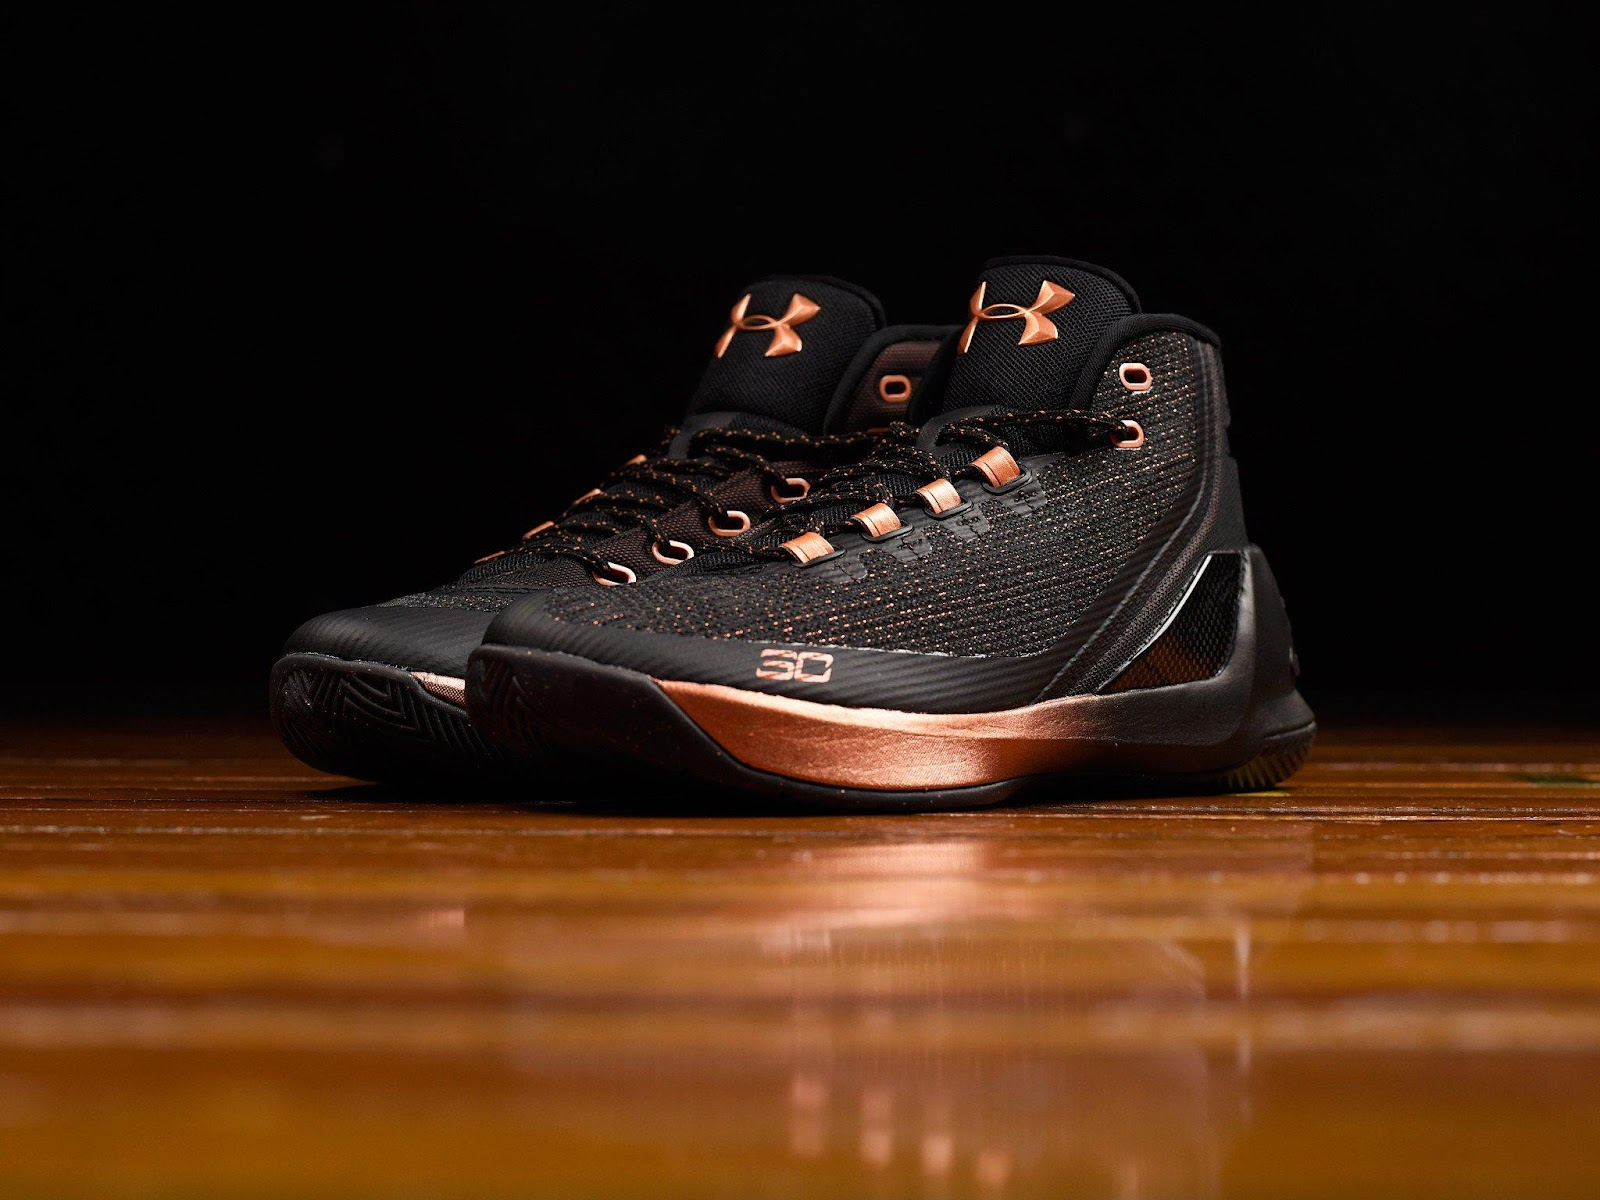 ttp://weartesters.com/wp-content/uploads/2017/02/under-armour-curry-3-all-star-1.jpg